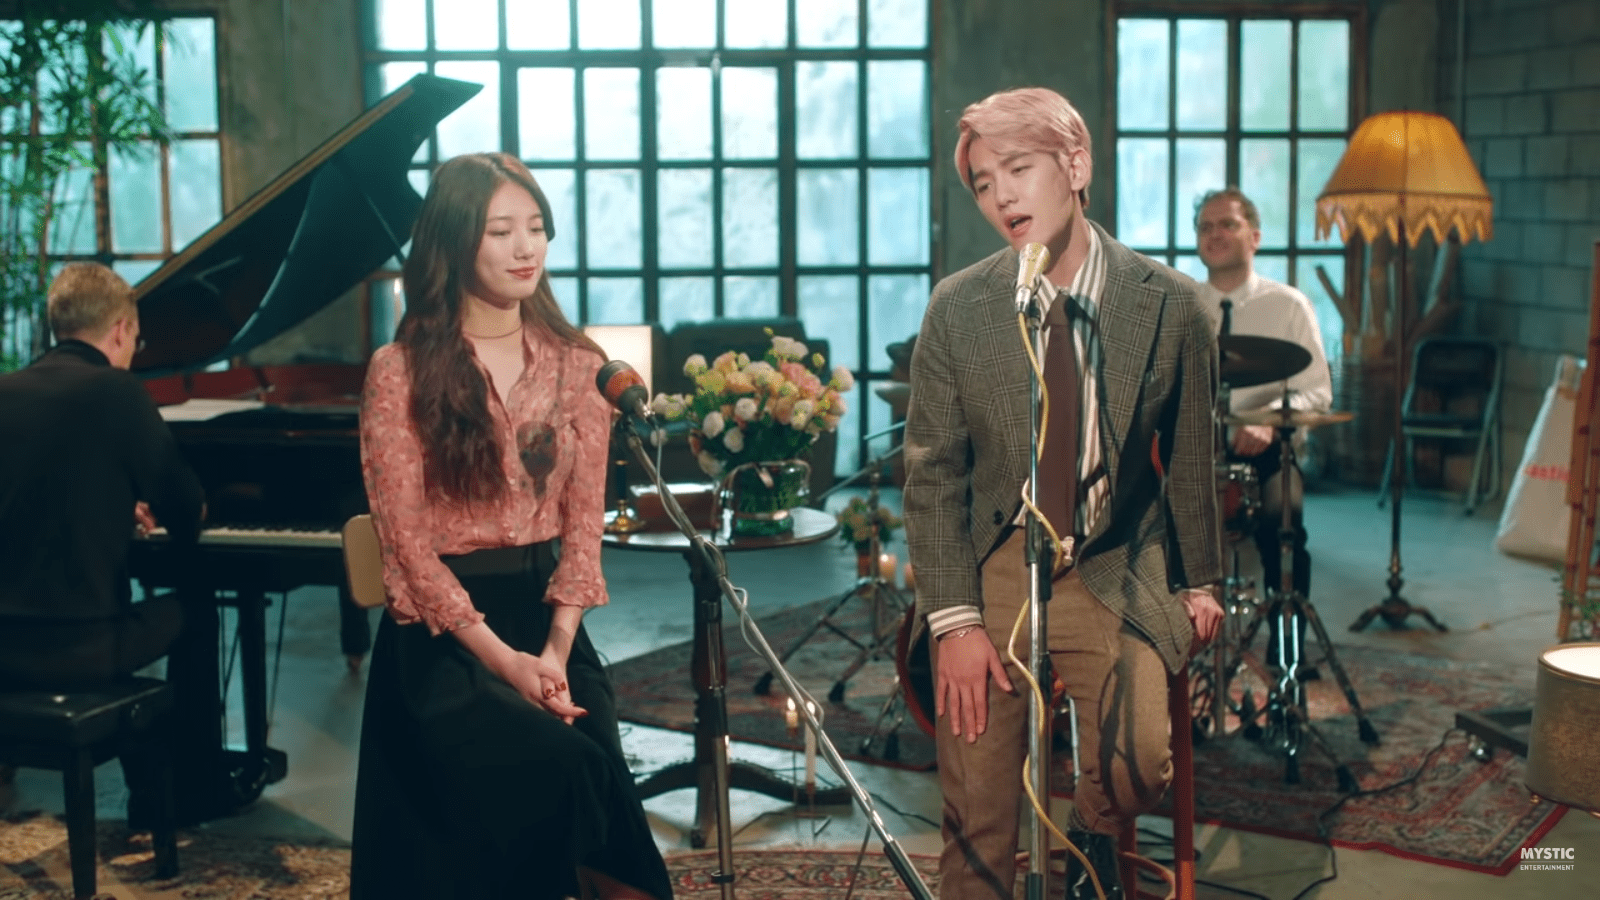 14 K-pop Songs You Should Listen To This Valentine's Day